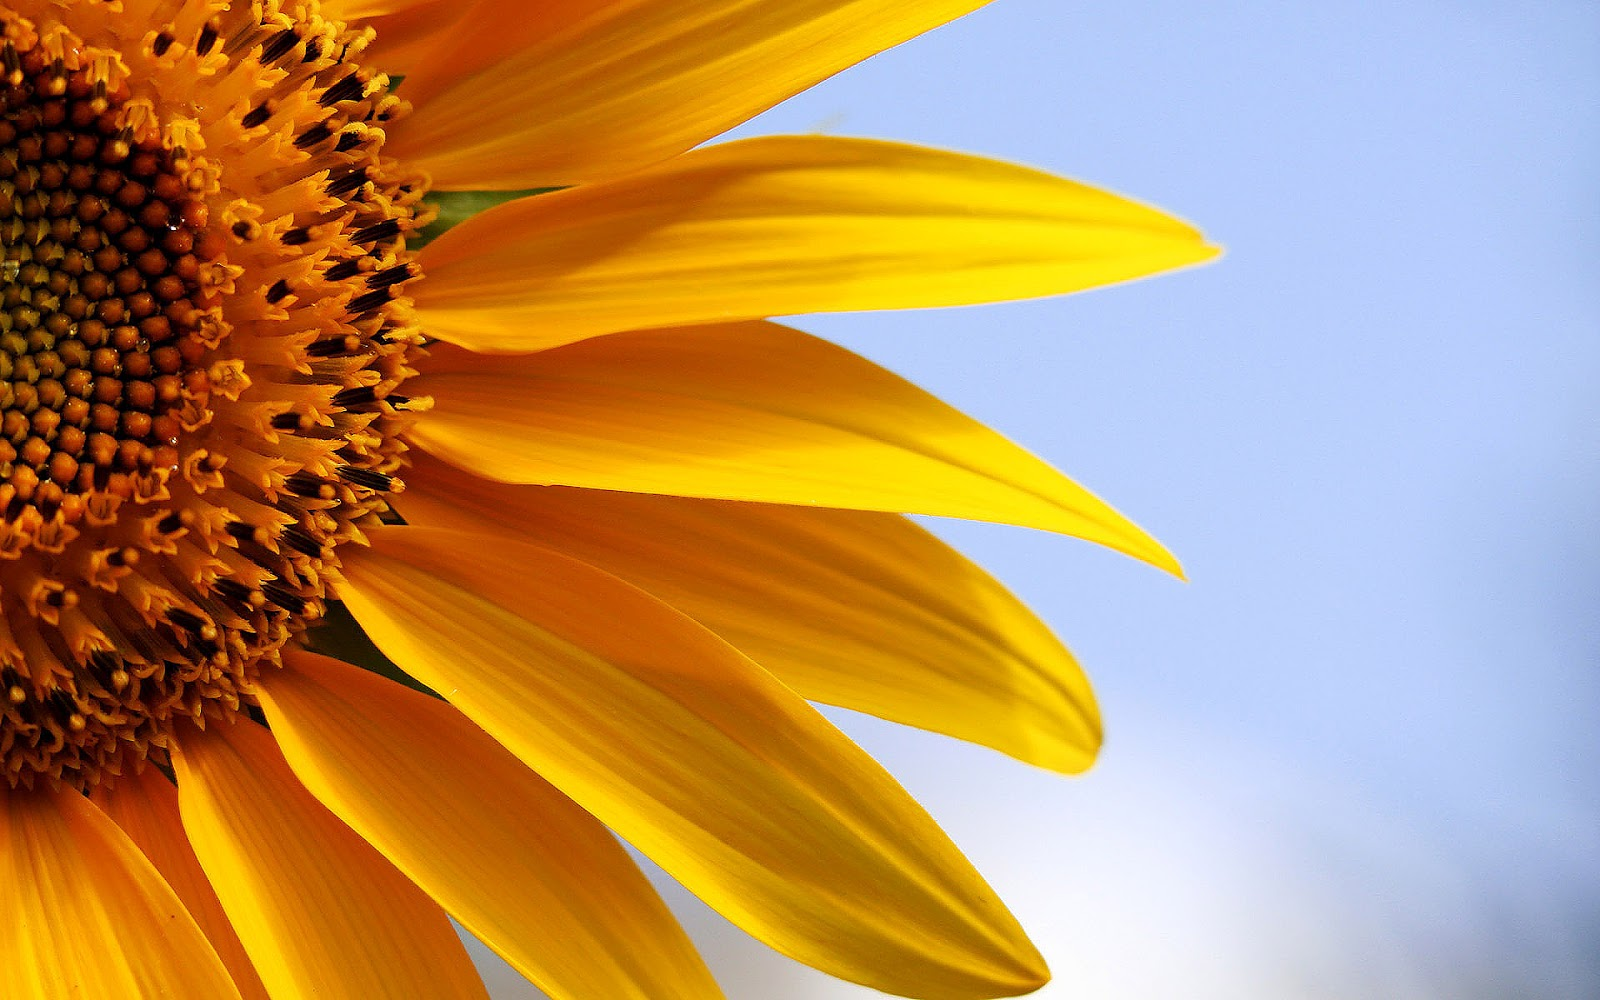 3d Sunflower Wallpaper Hd Sunflowers Wallpapers Top Best Hd Wallpapers For Desktop